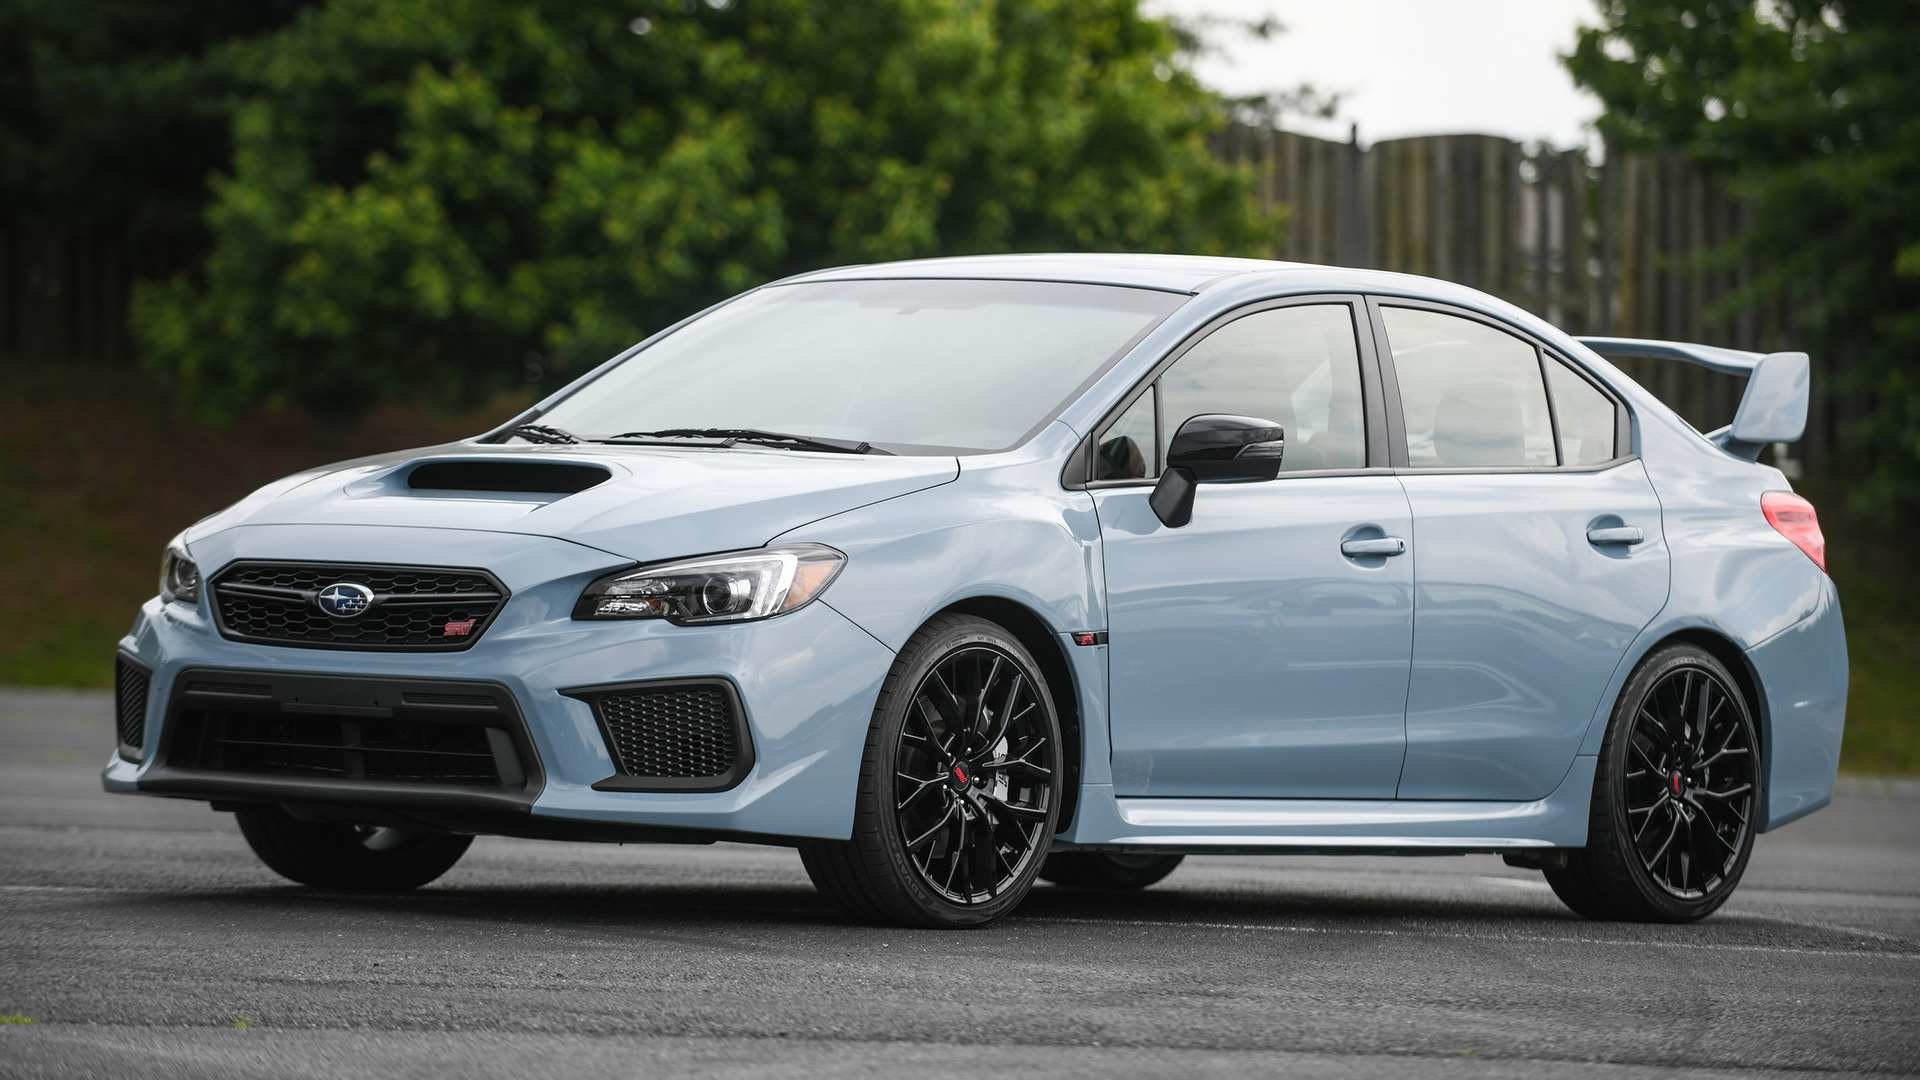 17 All New Subaru Impreza Sti 2019 Price And Release Date